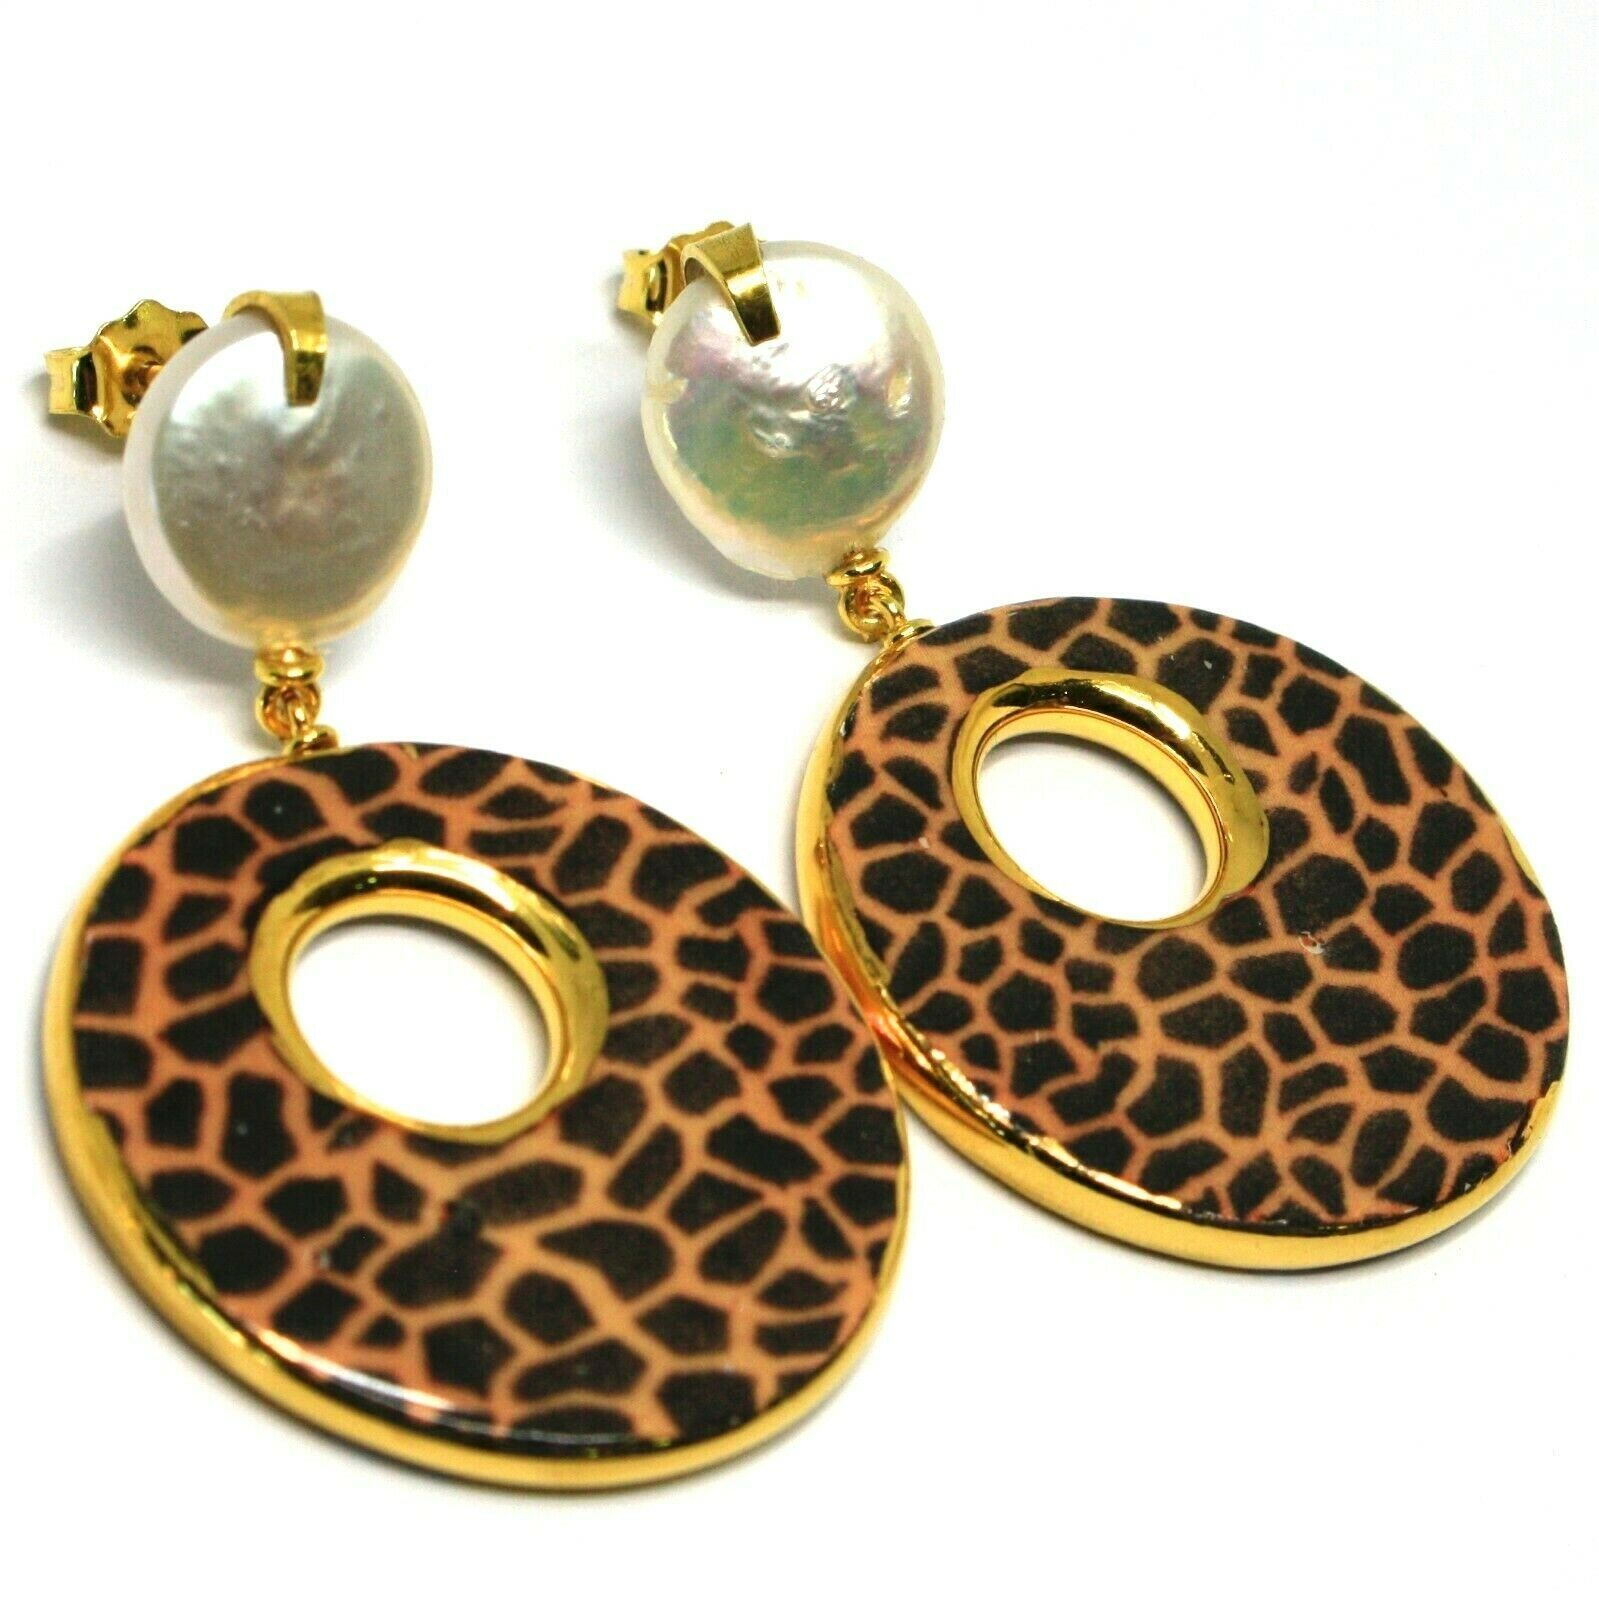 EARRINGS SILVER 925 HANGING PEARLS BAROQUE STYLE FLAT, OVALS EFFECT LEOPARD